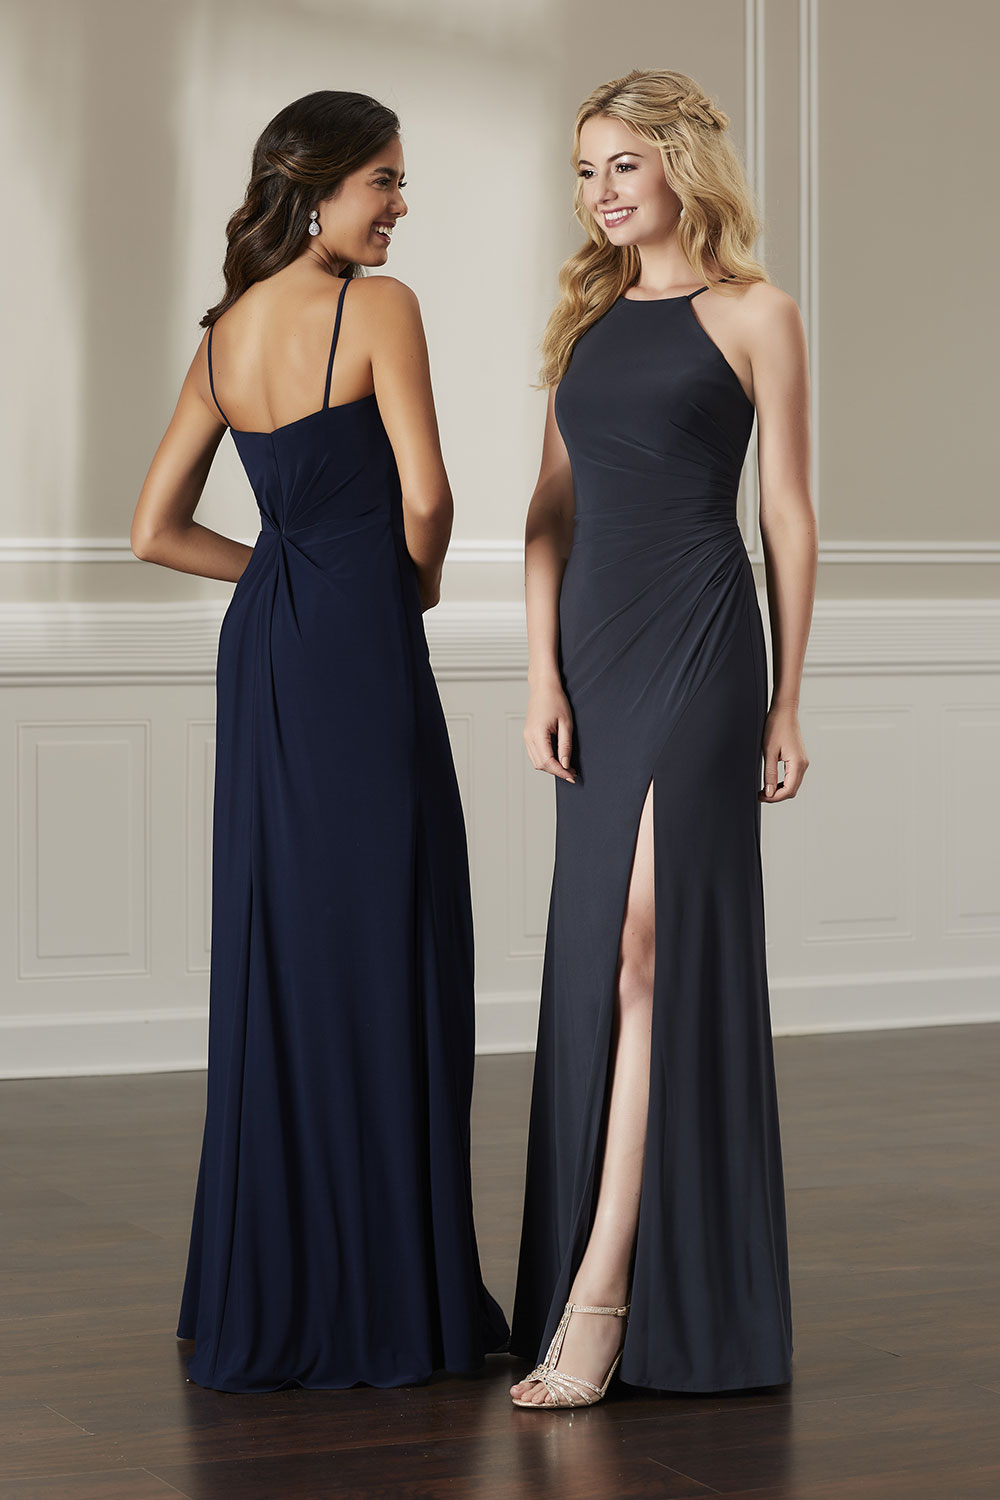 bridesmaid-dresses-jacquelin-bridals-canada-26841